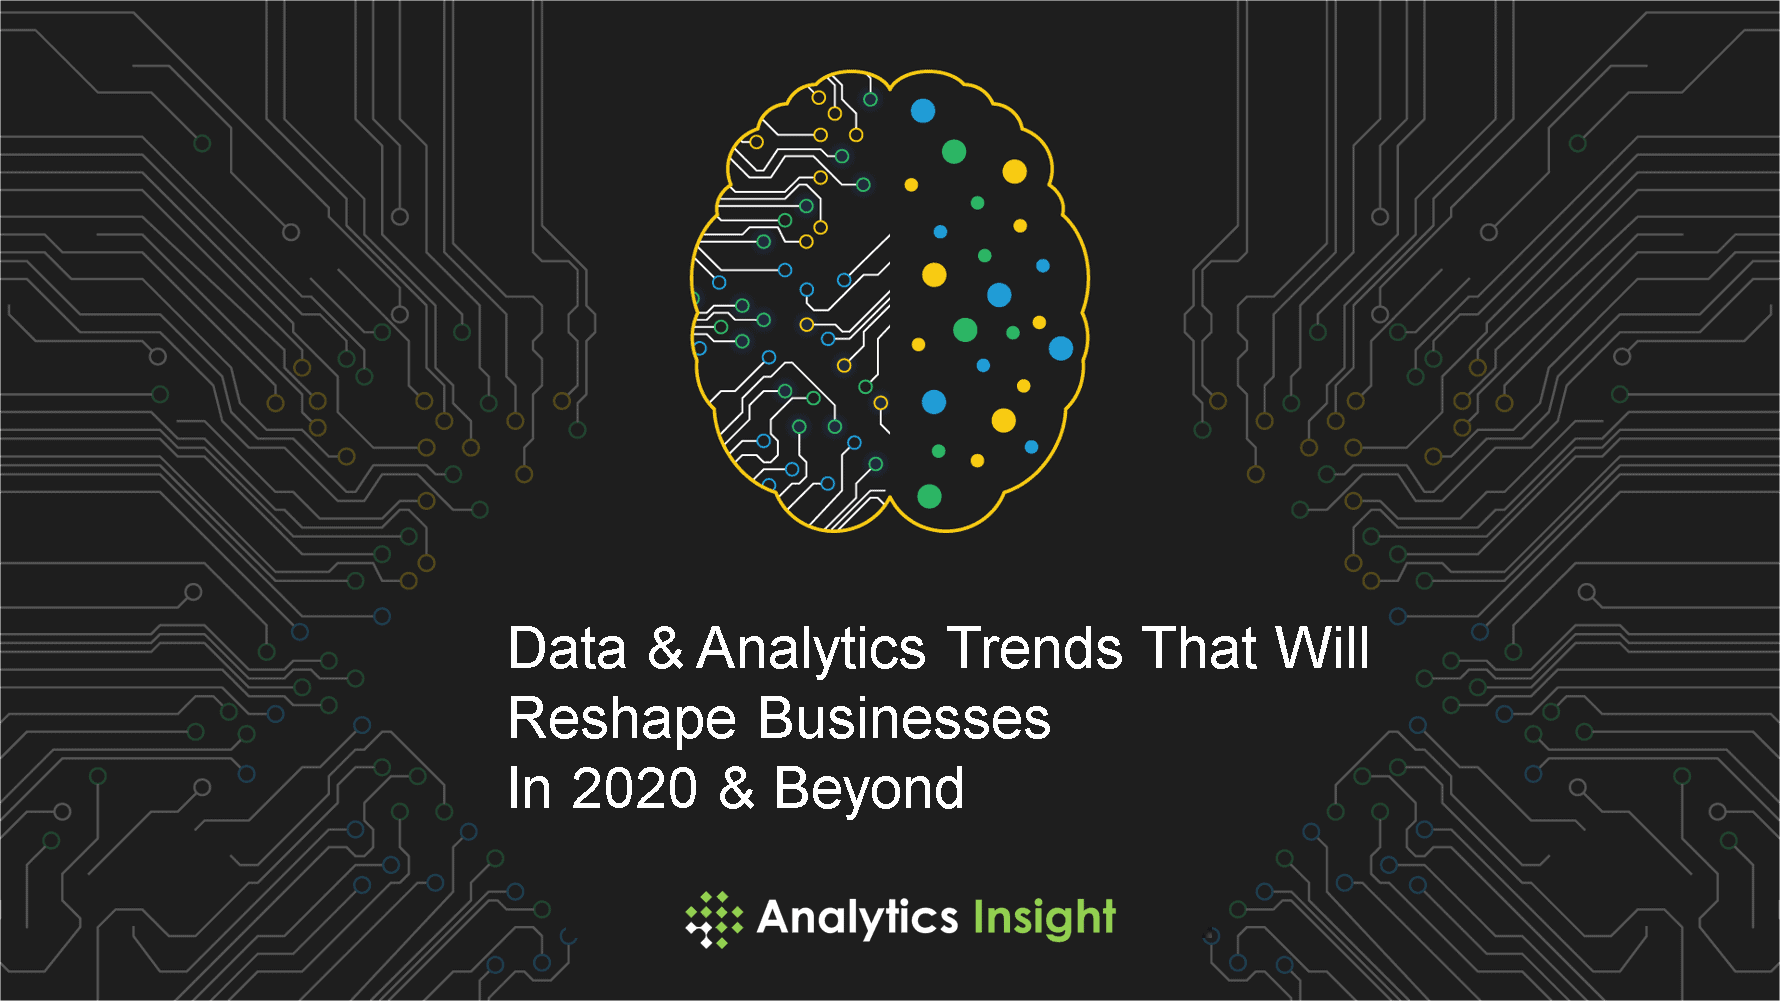 Business Management Articles 2020.Data Analytics Trends That Will Reshape Businesses In 2020